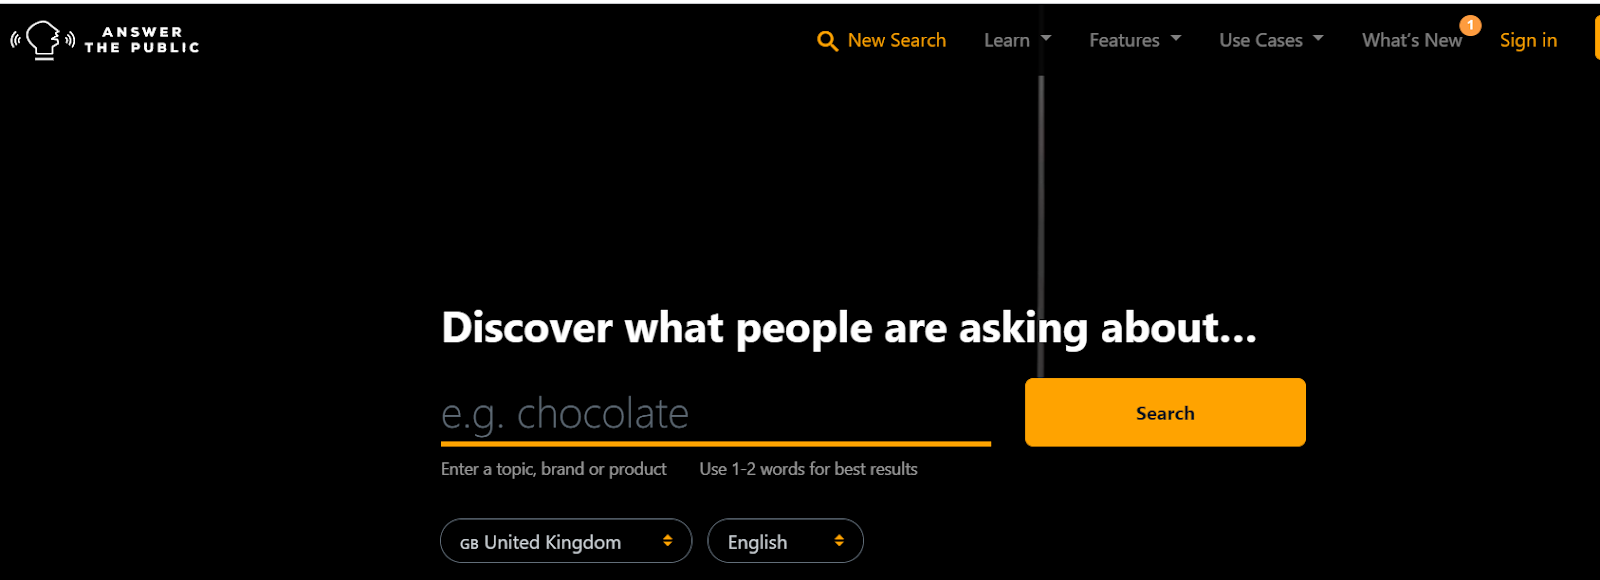 Screenshot of Answer the Public - A Keywords Search Engine